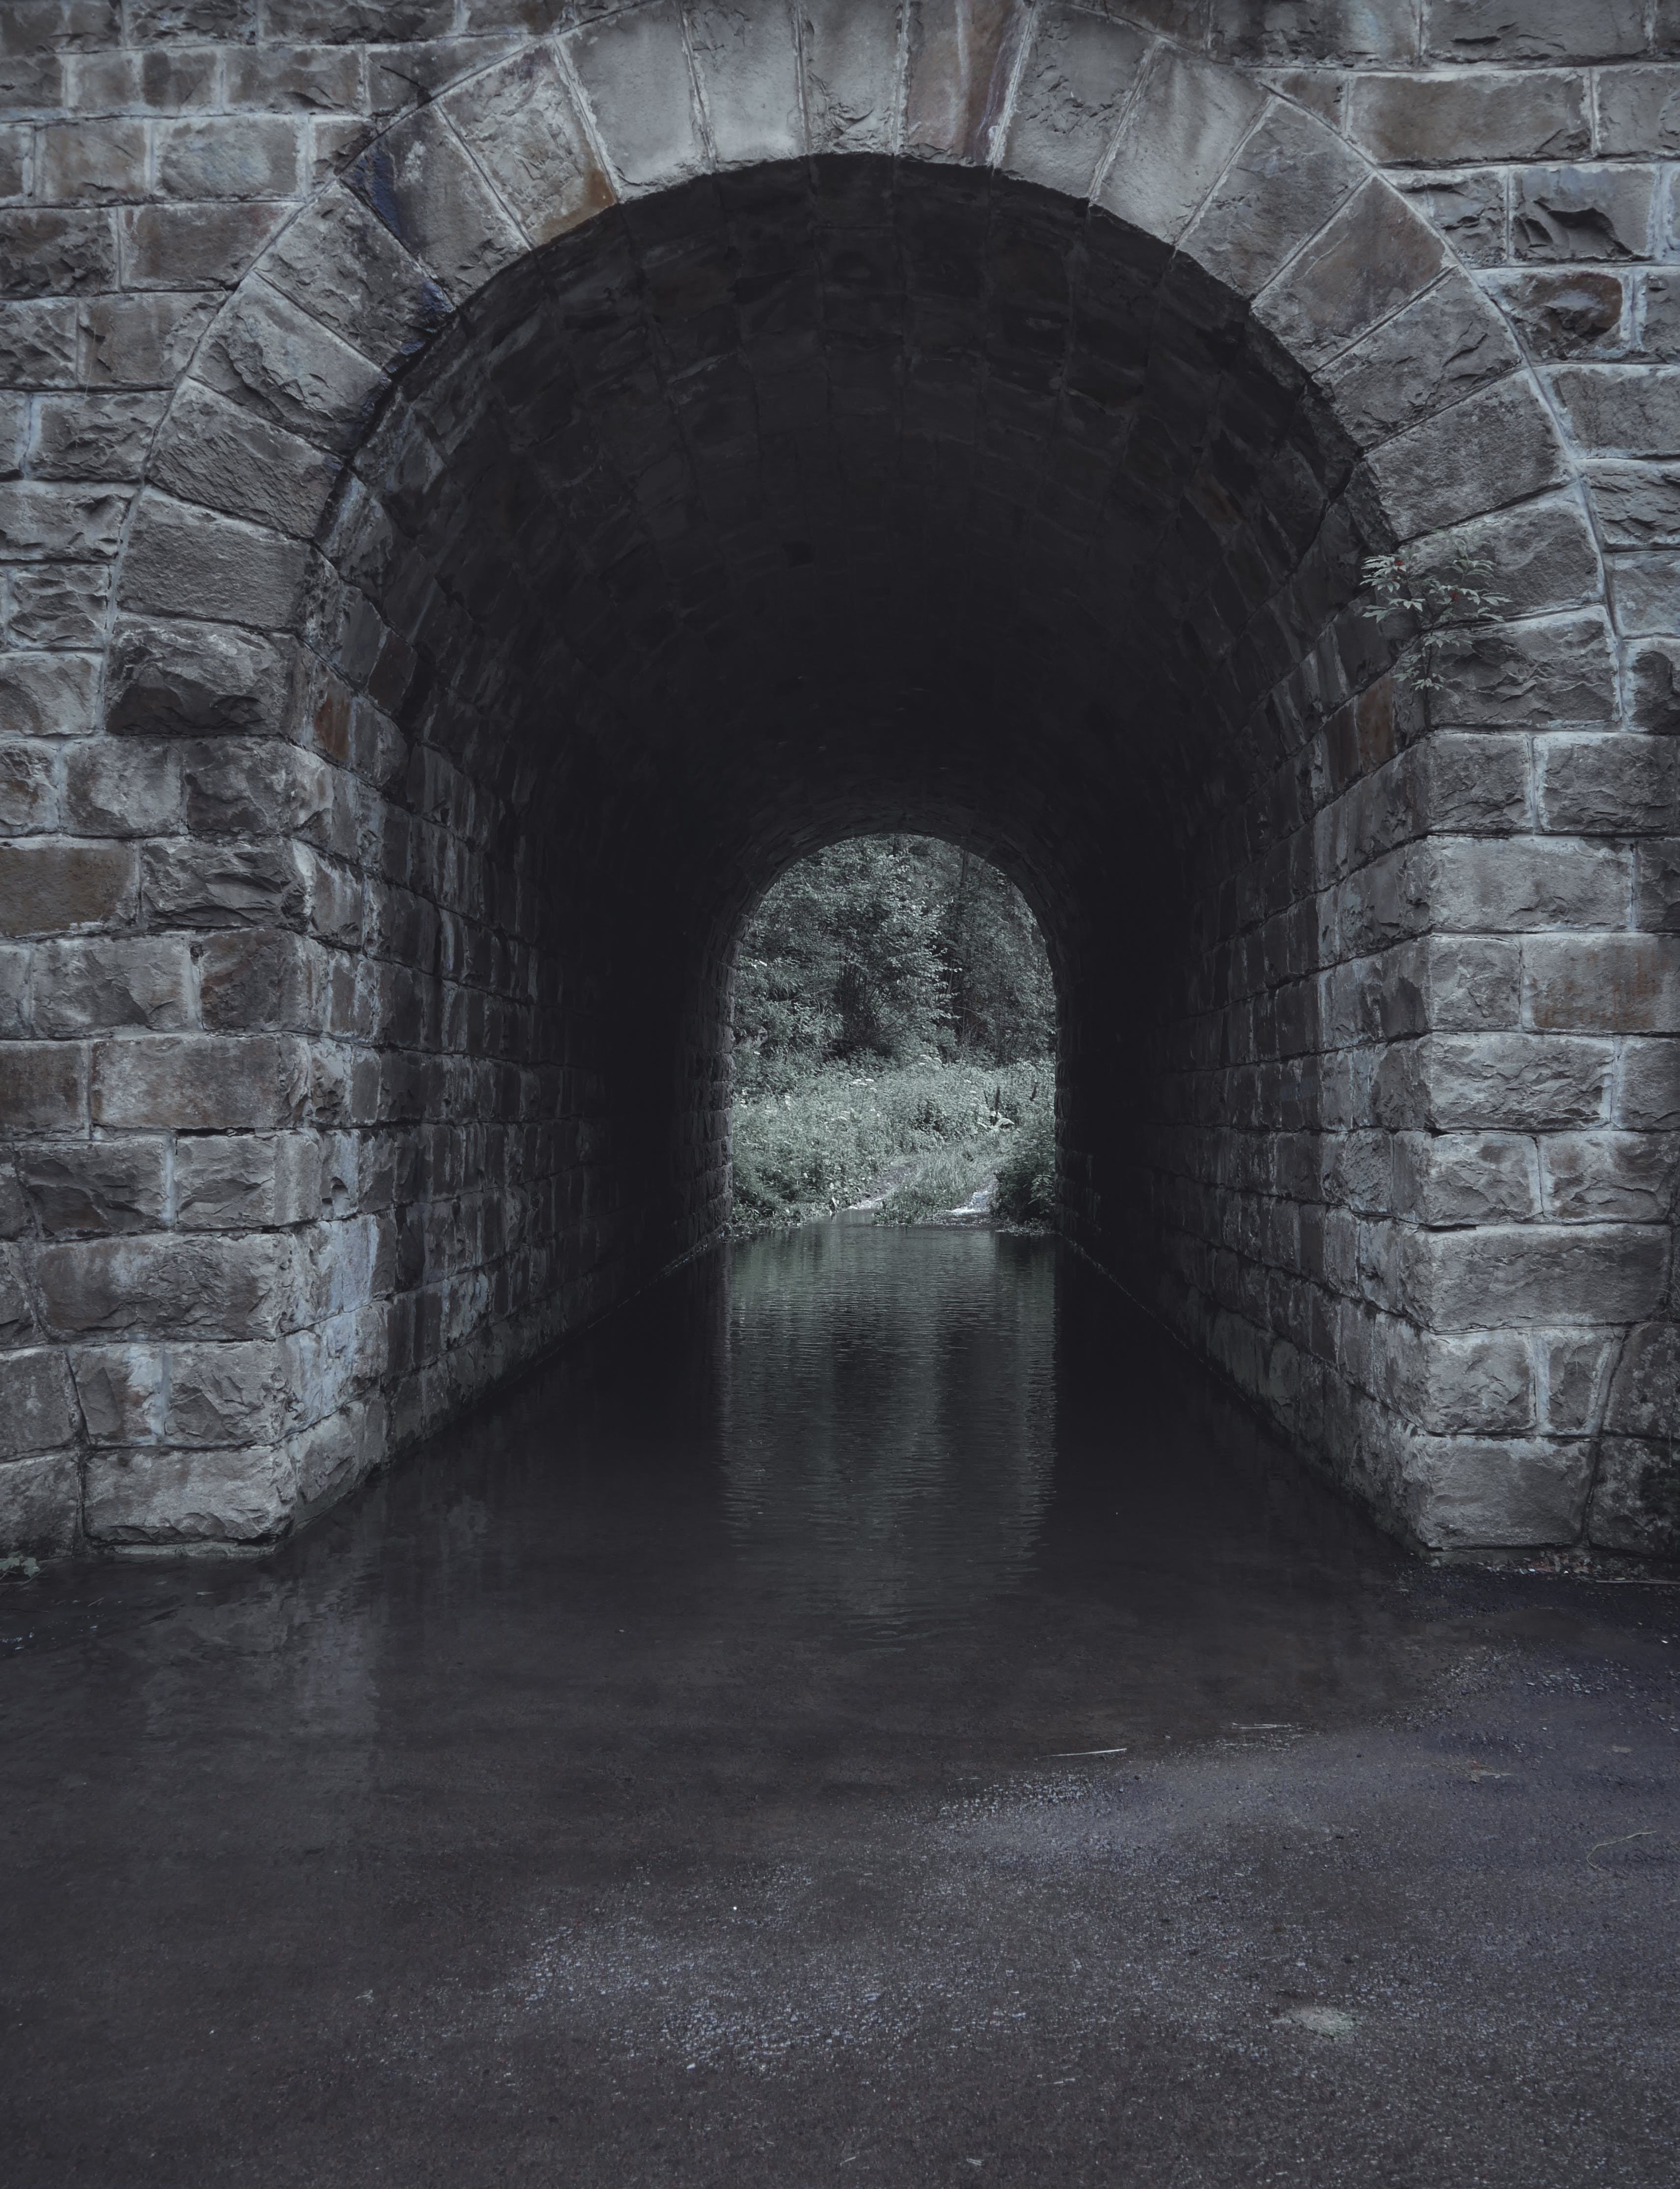 Free stock photo of dark, tunnel, tunnel view, water